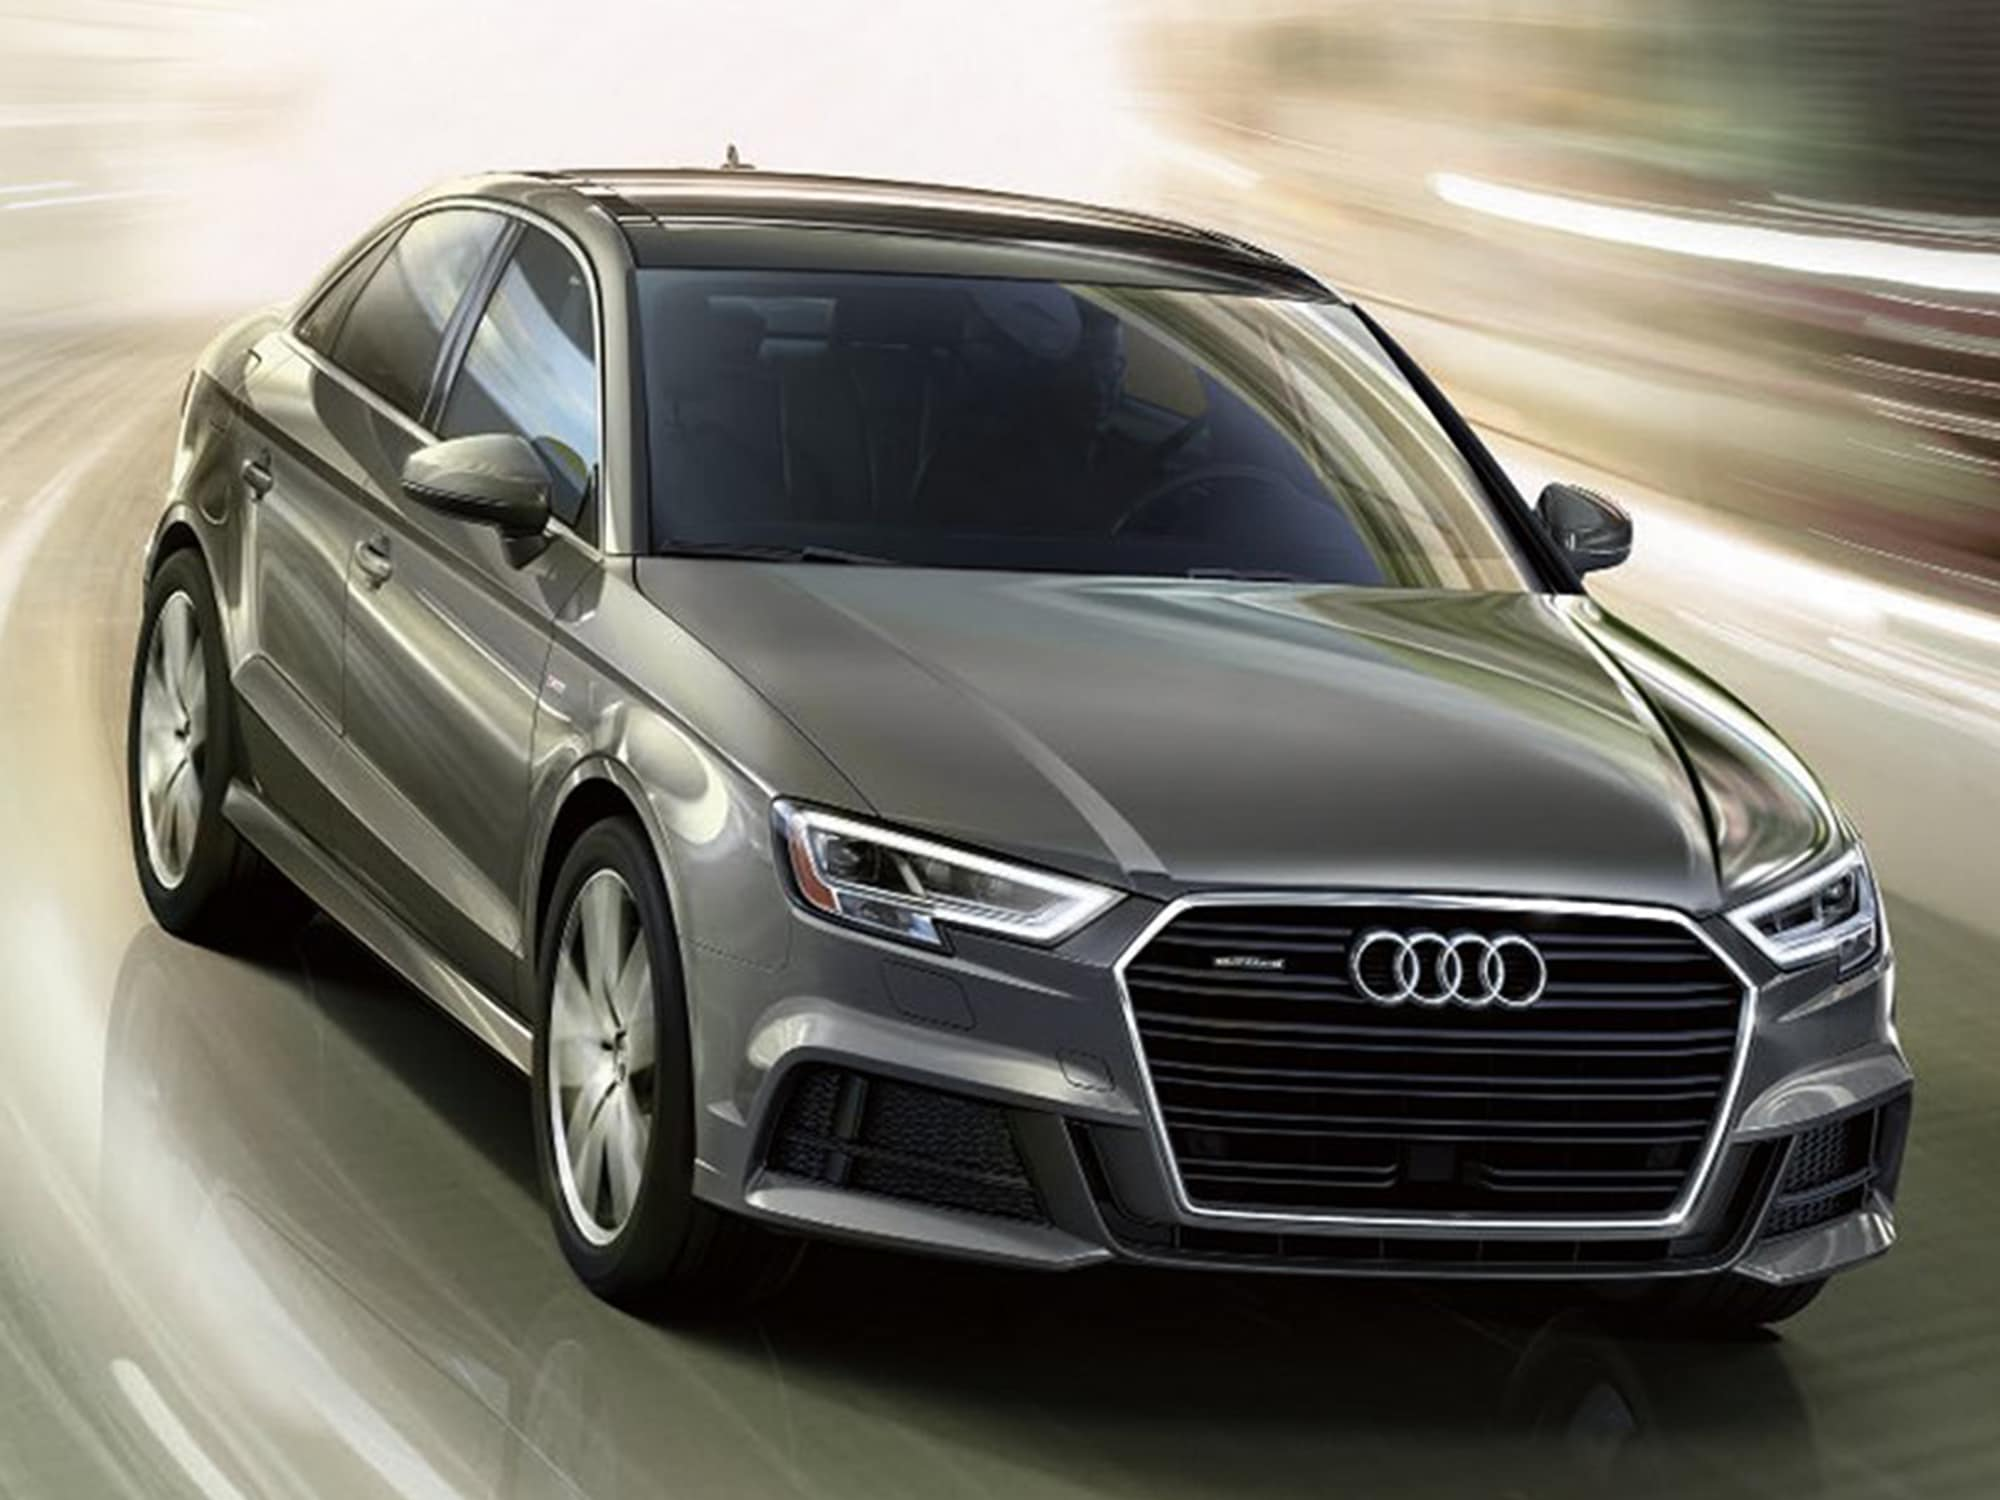 2018 Audi A3 Model Review Near Los Angeles Ca Santa Monica Audi